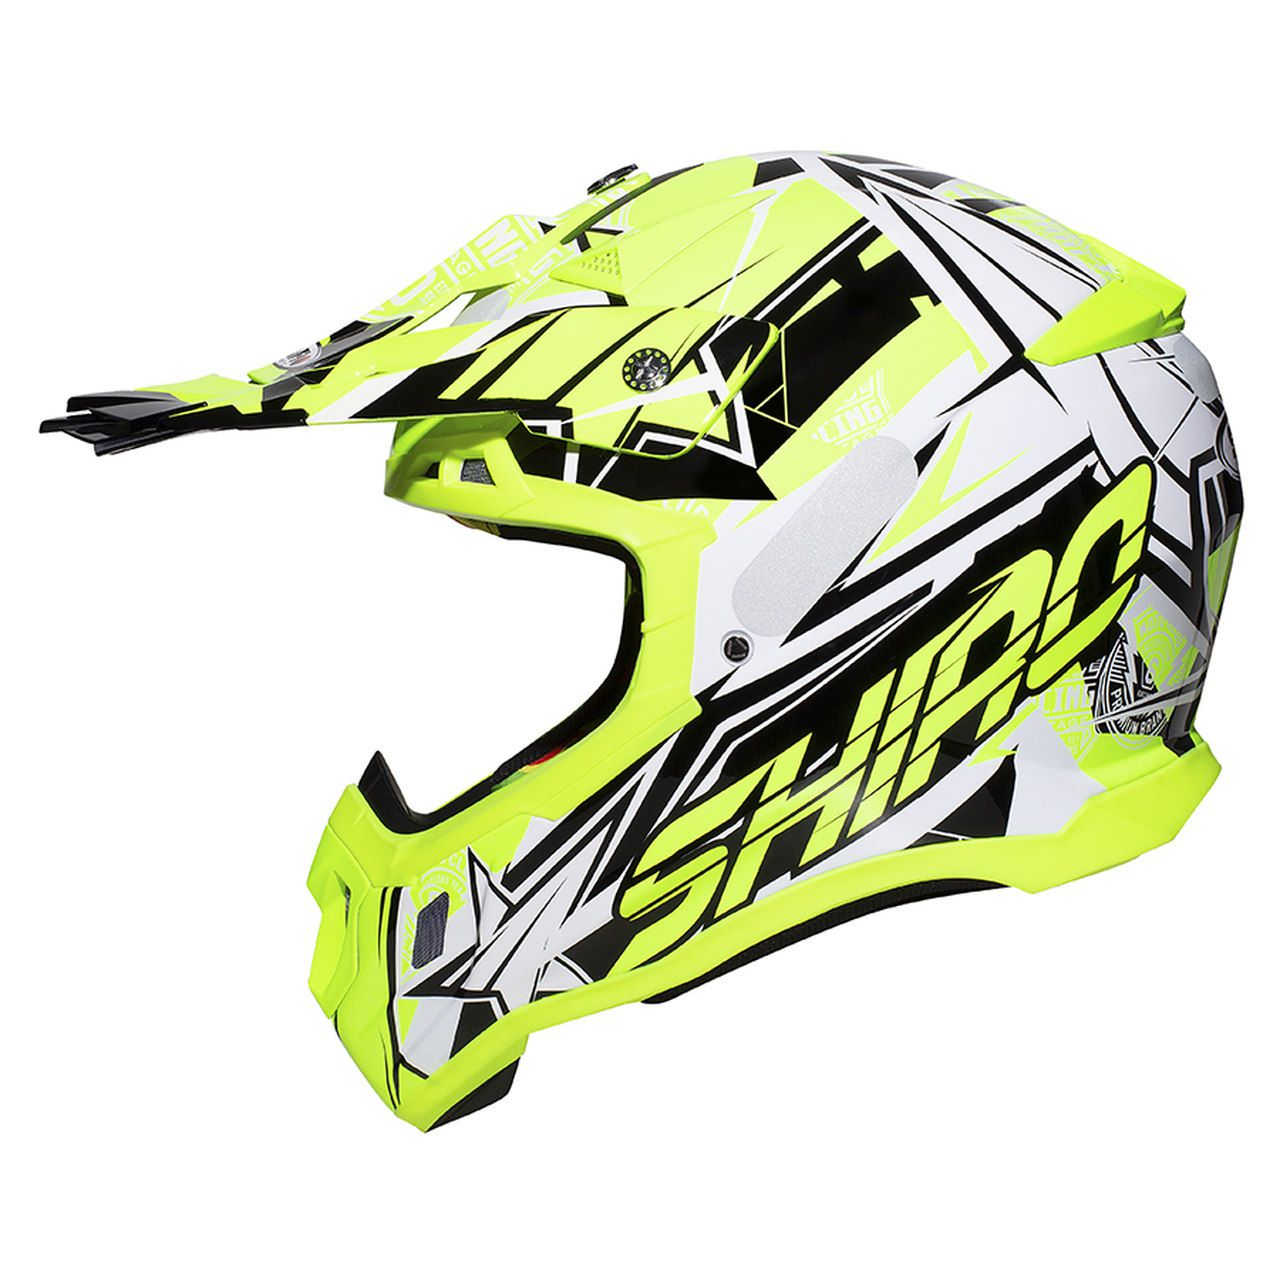 Capacete Shiro Motocross Off Road MX-917 Thunder III Amarelo Fluor